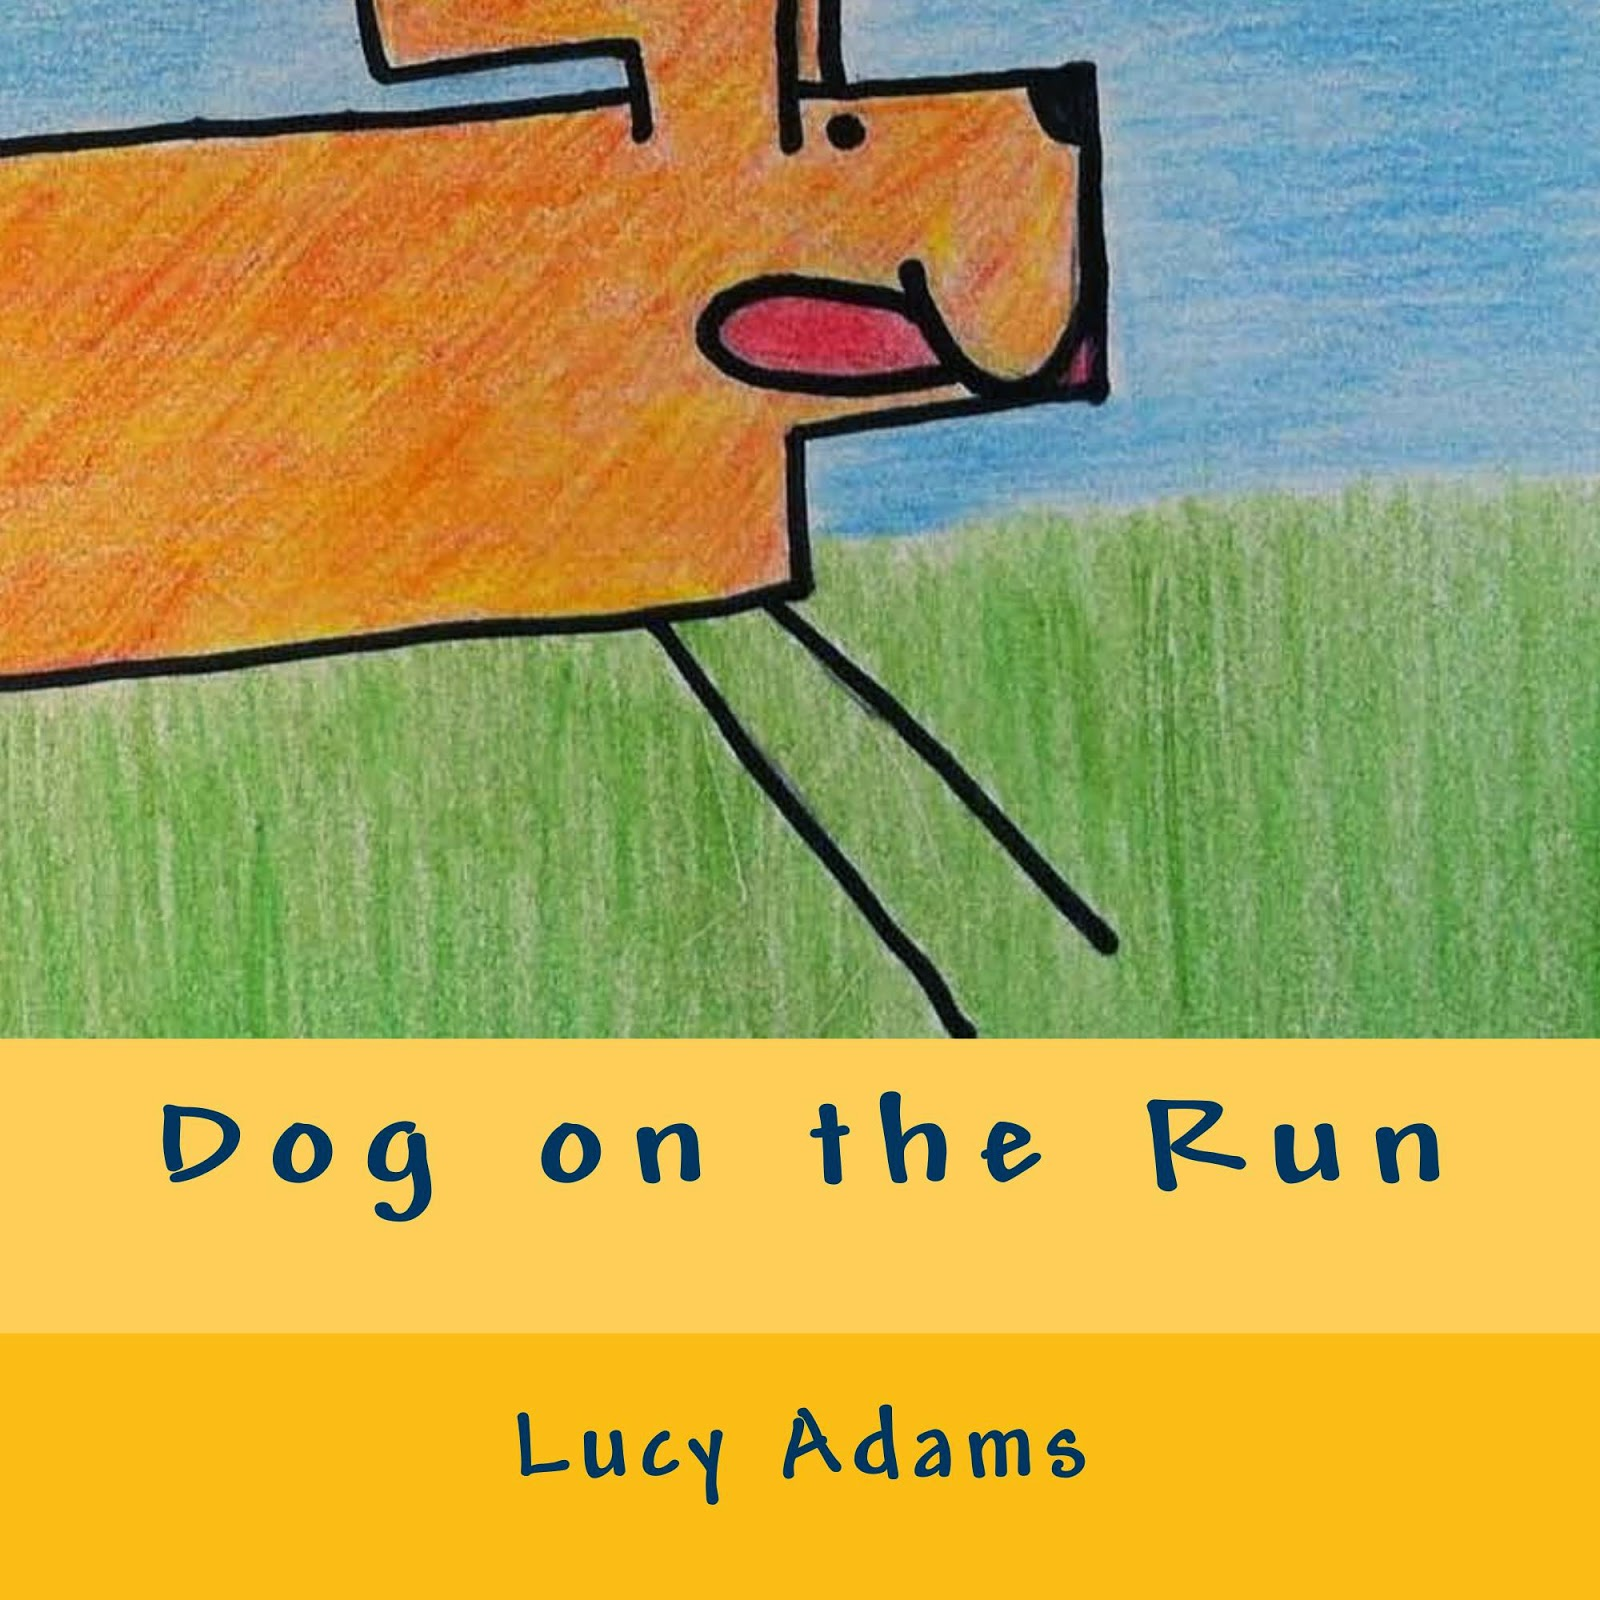 http://www.amazon.com/Dog-Run-Lucy-Adams/dp/1500671215/ref=sr_1_19_title_1_pap?s=books&ie=UTF8&qid=1409948023&sr=1-19&keywords=dog+on+the+run